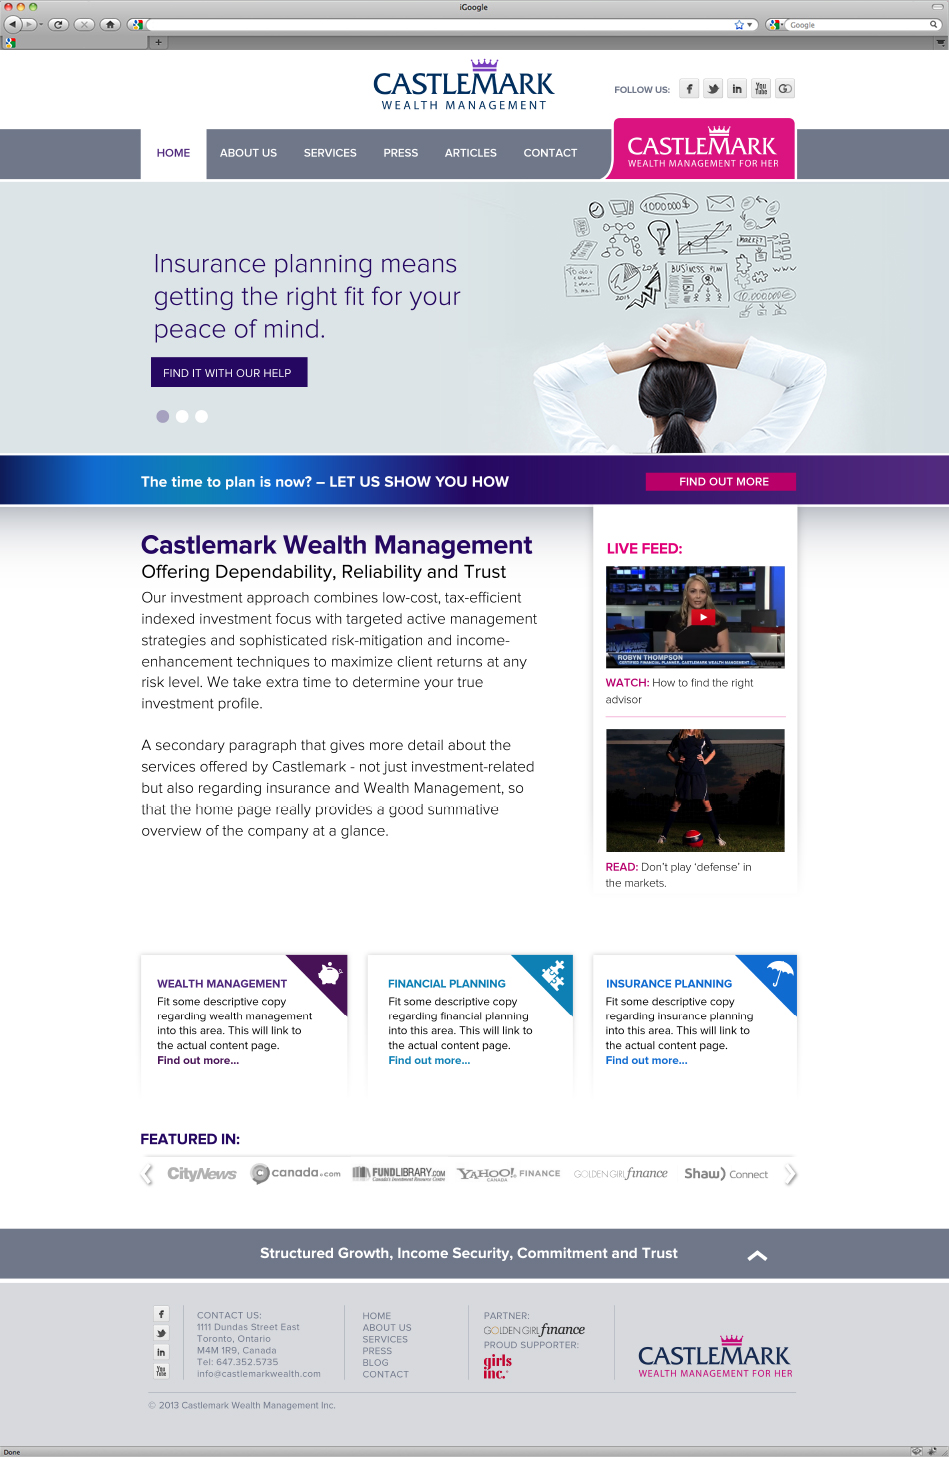 Castlemark Wealth Management website interface